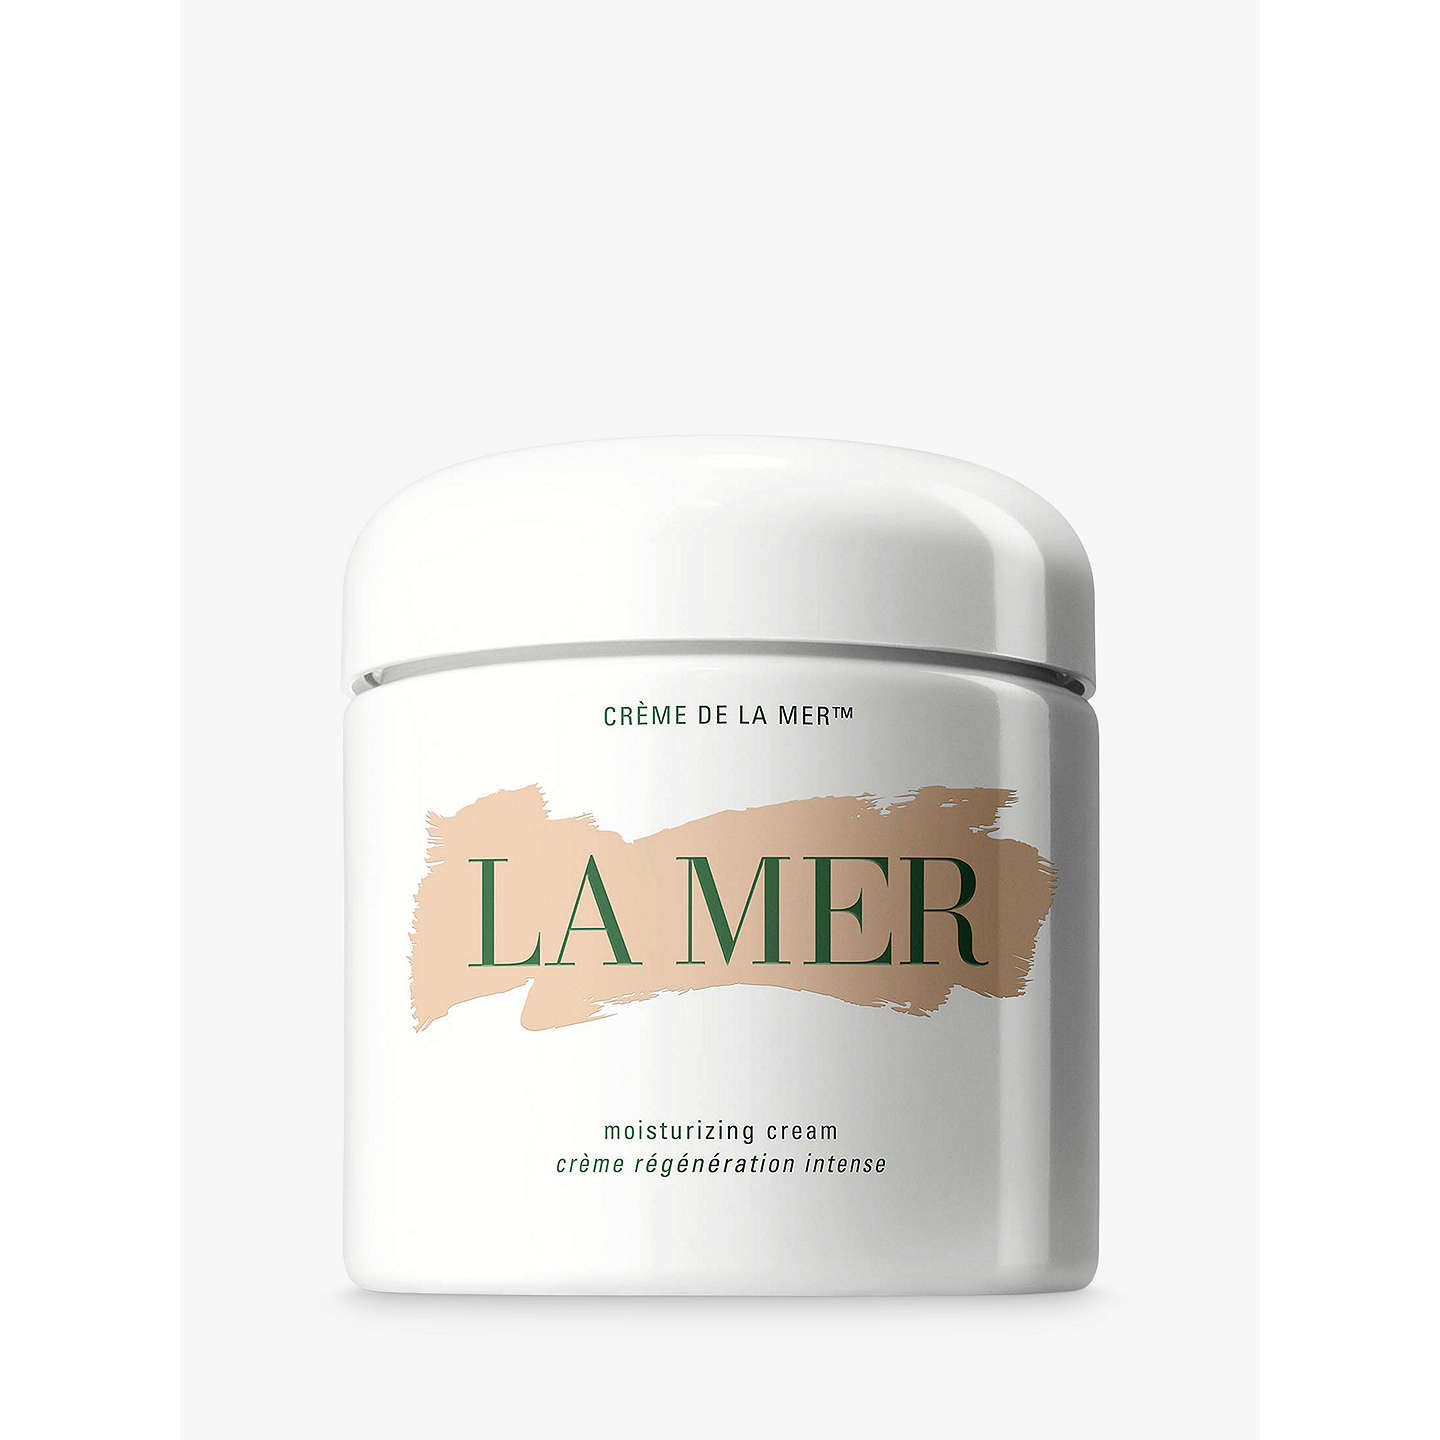 BuyLa Mer Moisturising Cream, 30ml Online at johnlewis.com